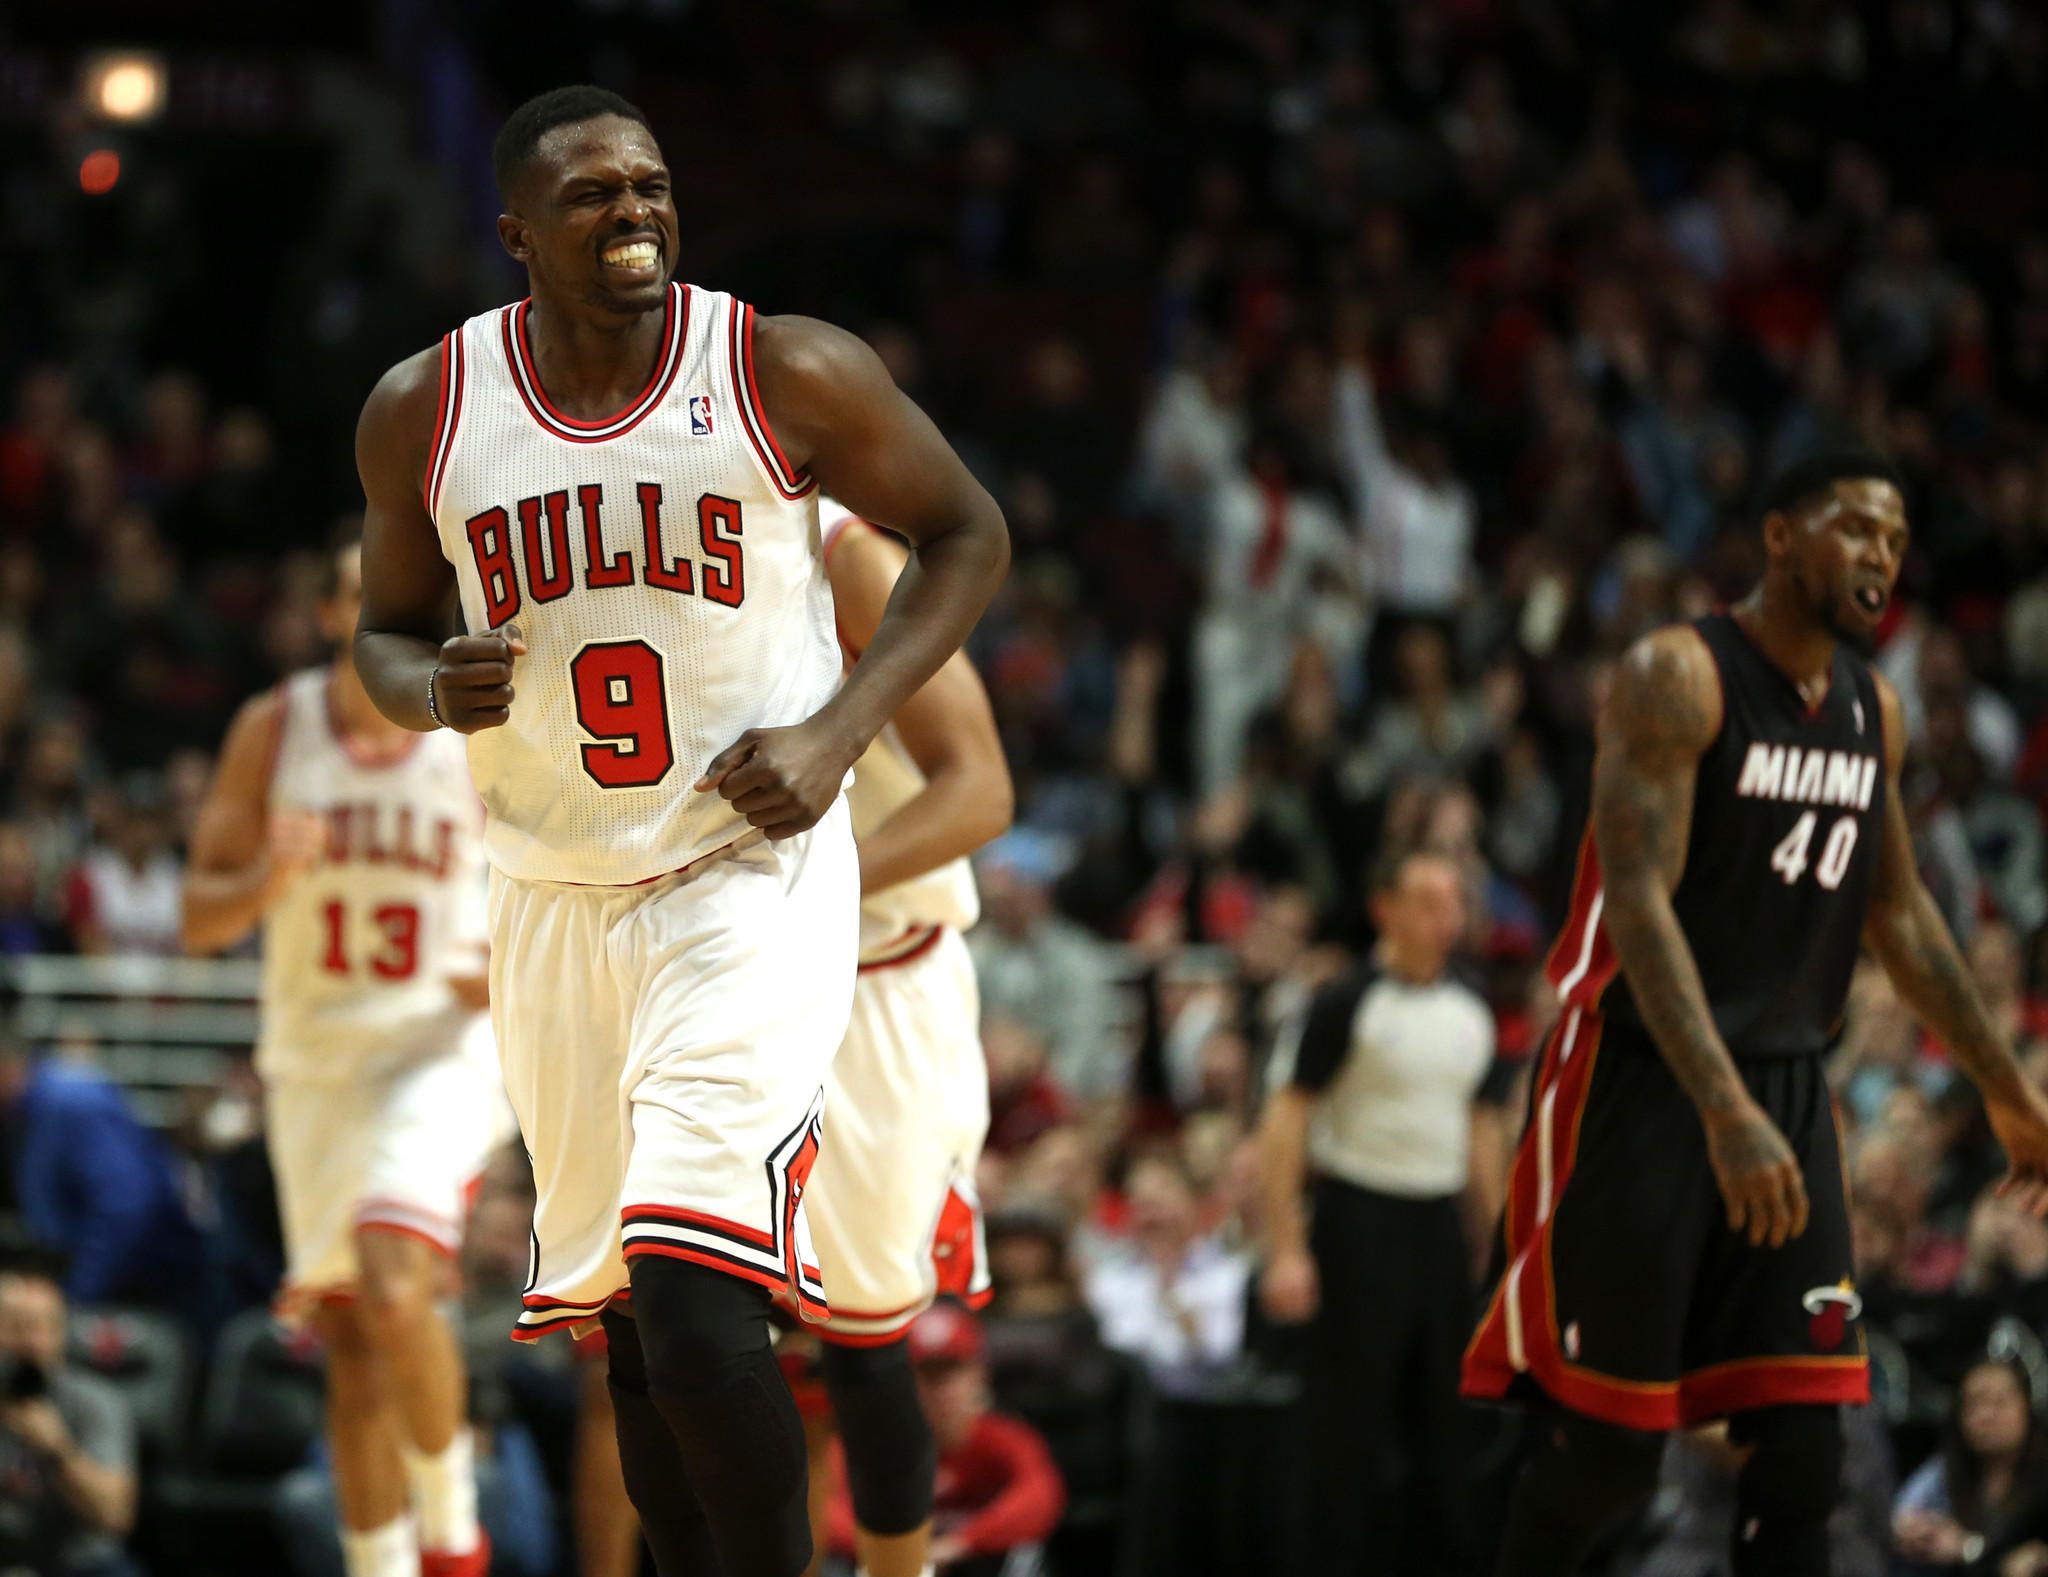 Chicago Bulls small forward Luol Deng smiles broadly as he runs up the court after burying a jumper late in the fourth quarter against the Miami Heat at the United Center.